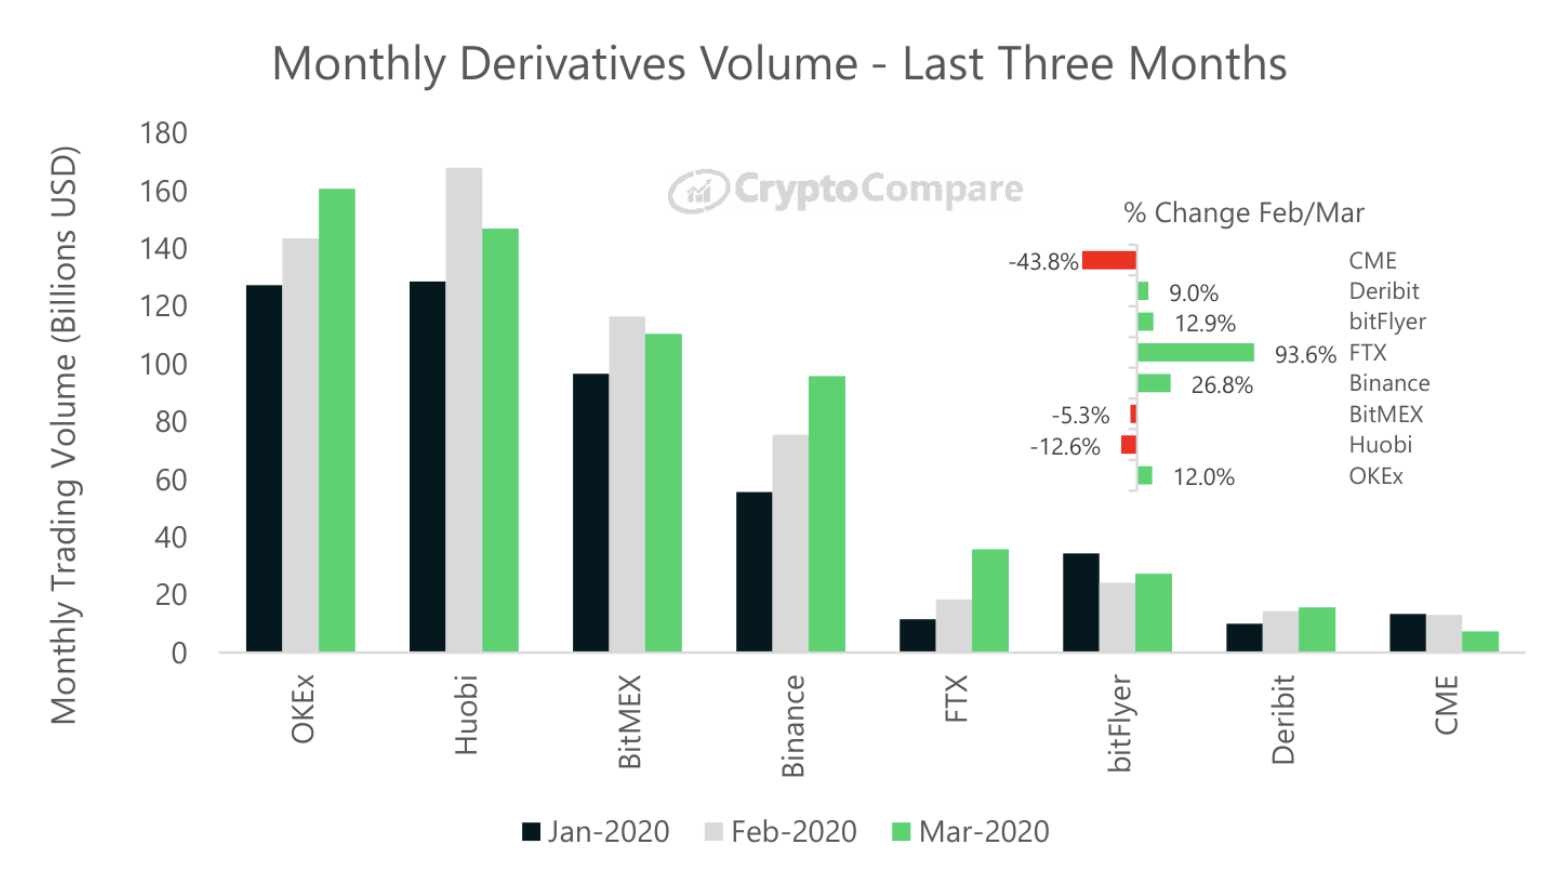 Monthly Derivatives Volume by CryptoCompare